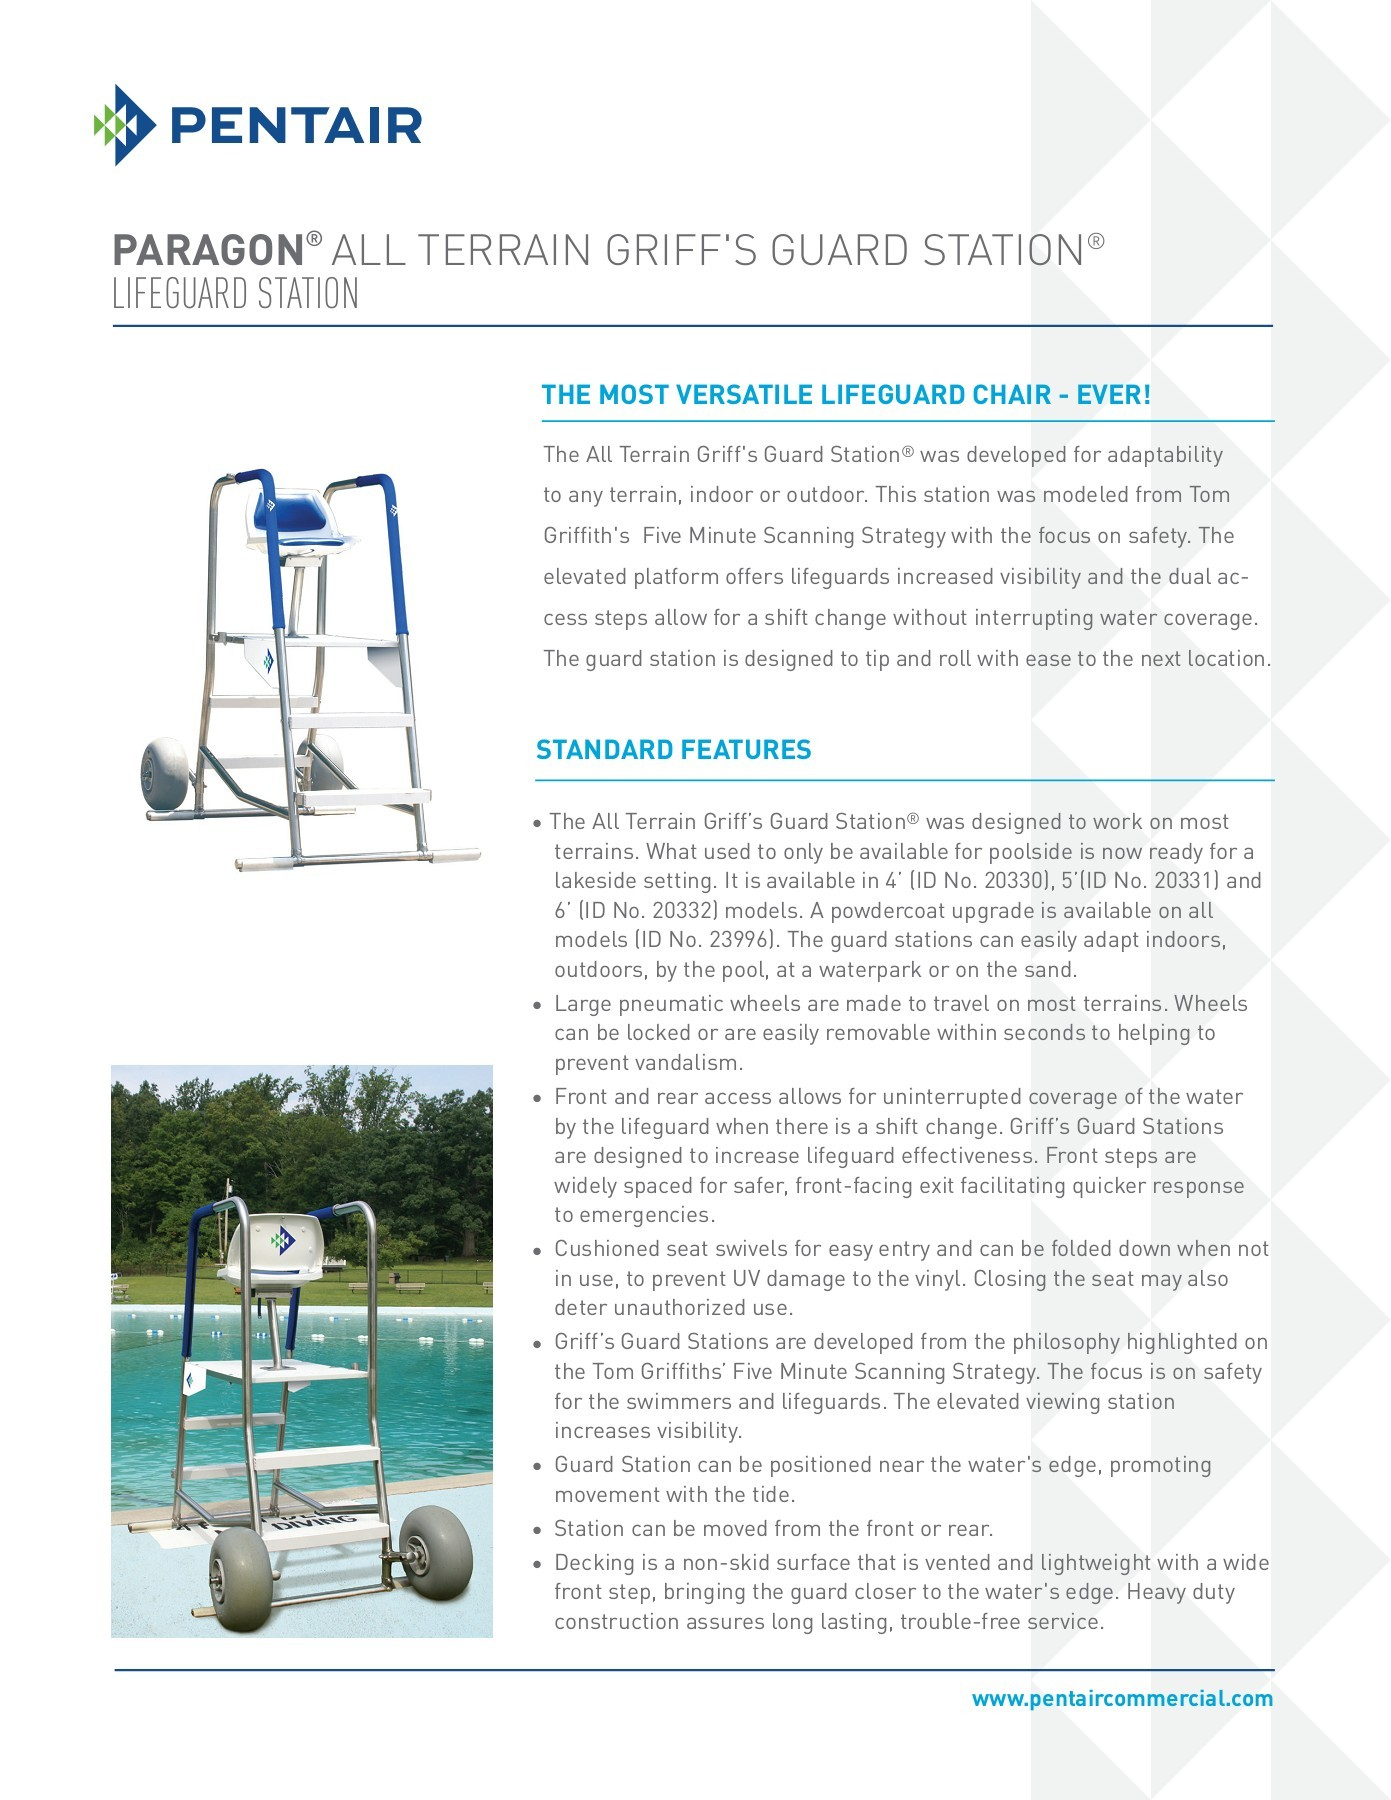 paragon lifeguard chairs white leather chair office all terrain griff s guard station fliphtml5